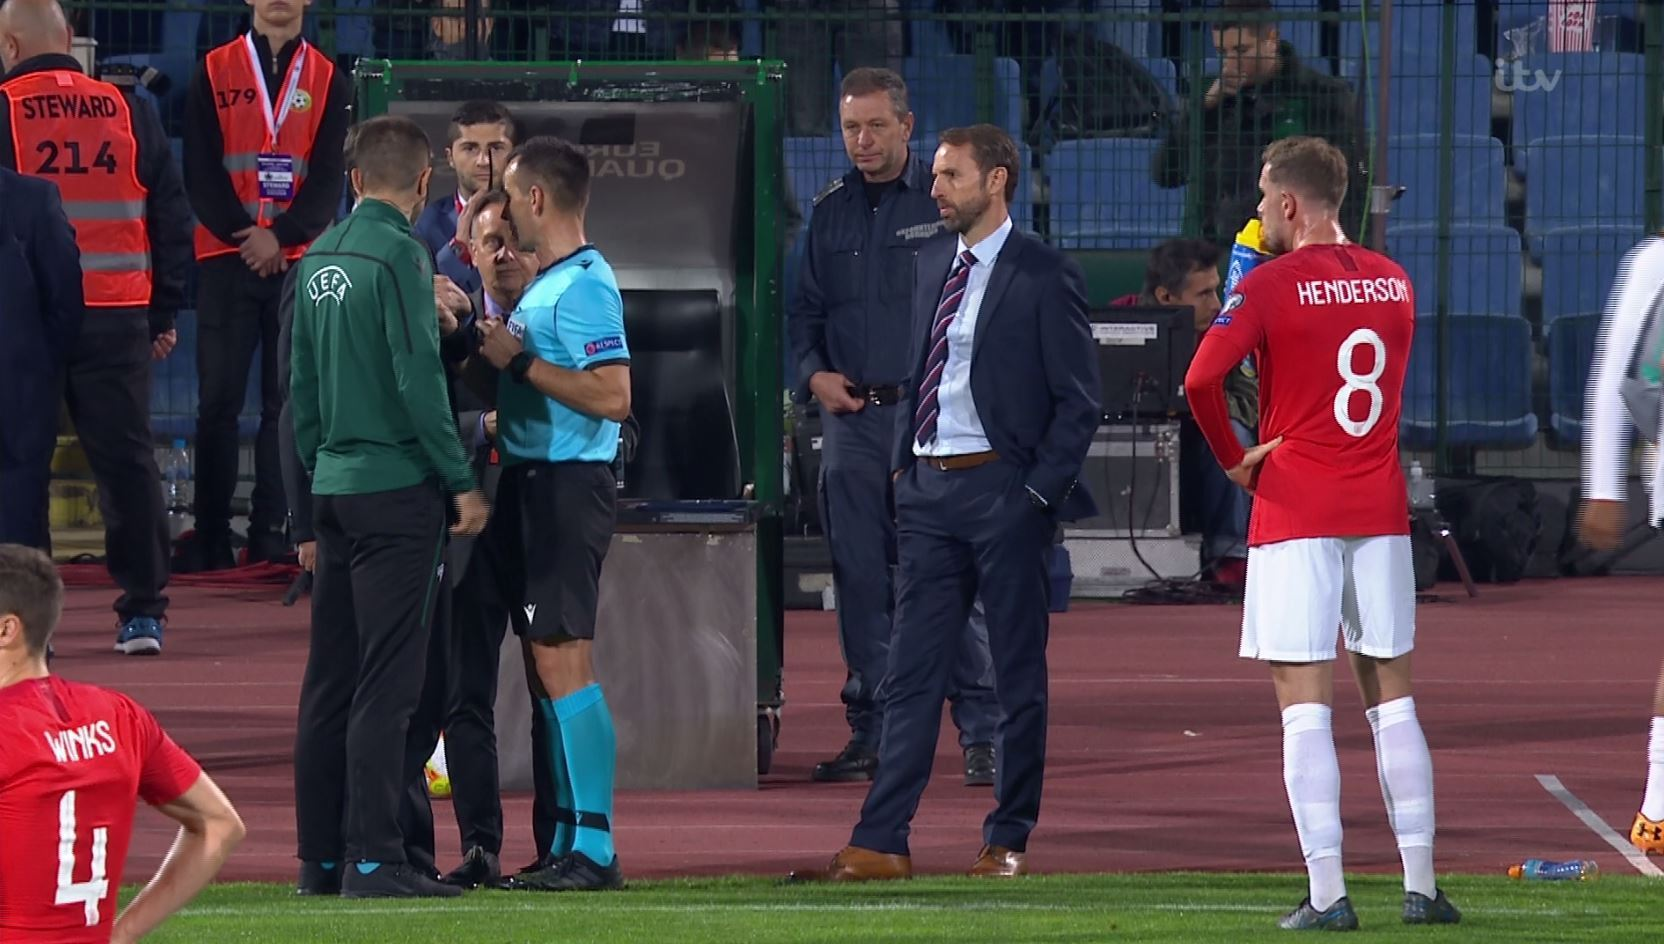 Referee Ivan Bebek can be seen talking with the Uefa delegate after a complaint by England players